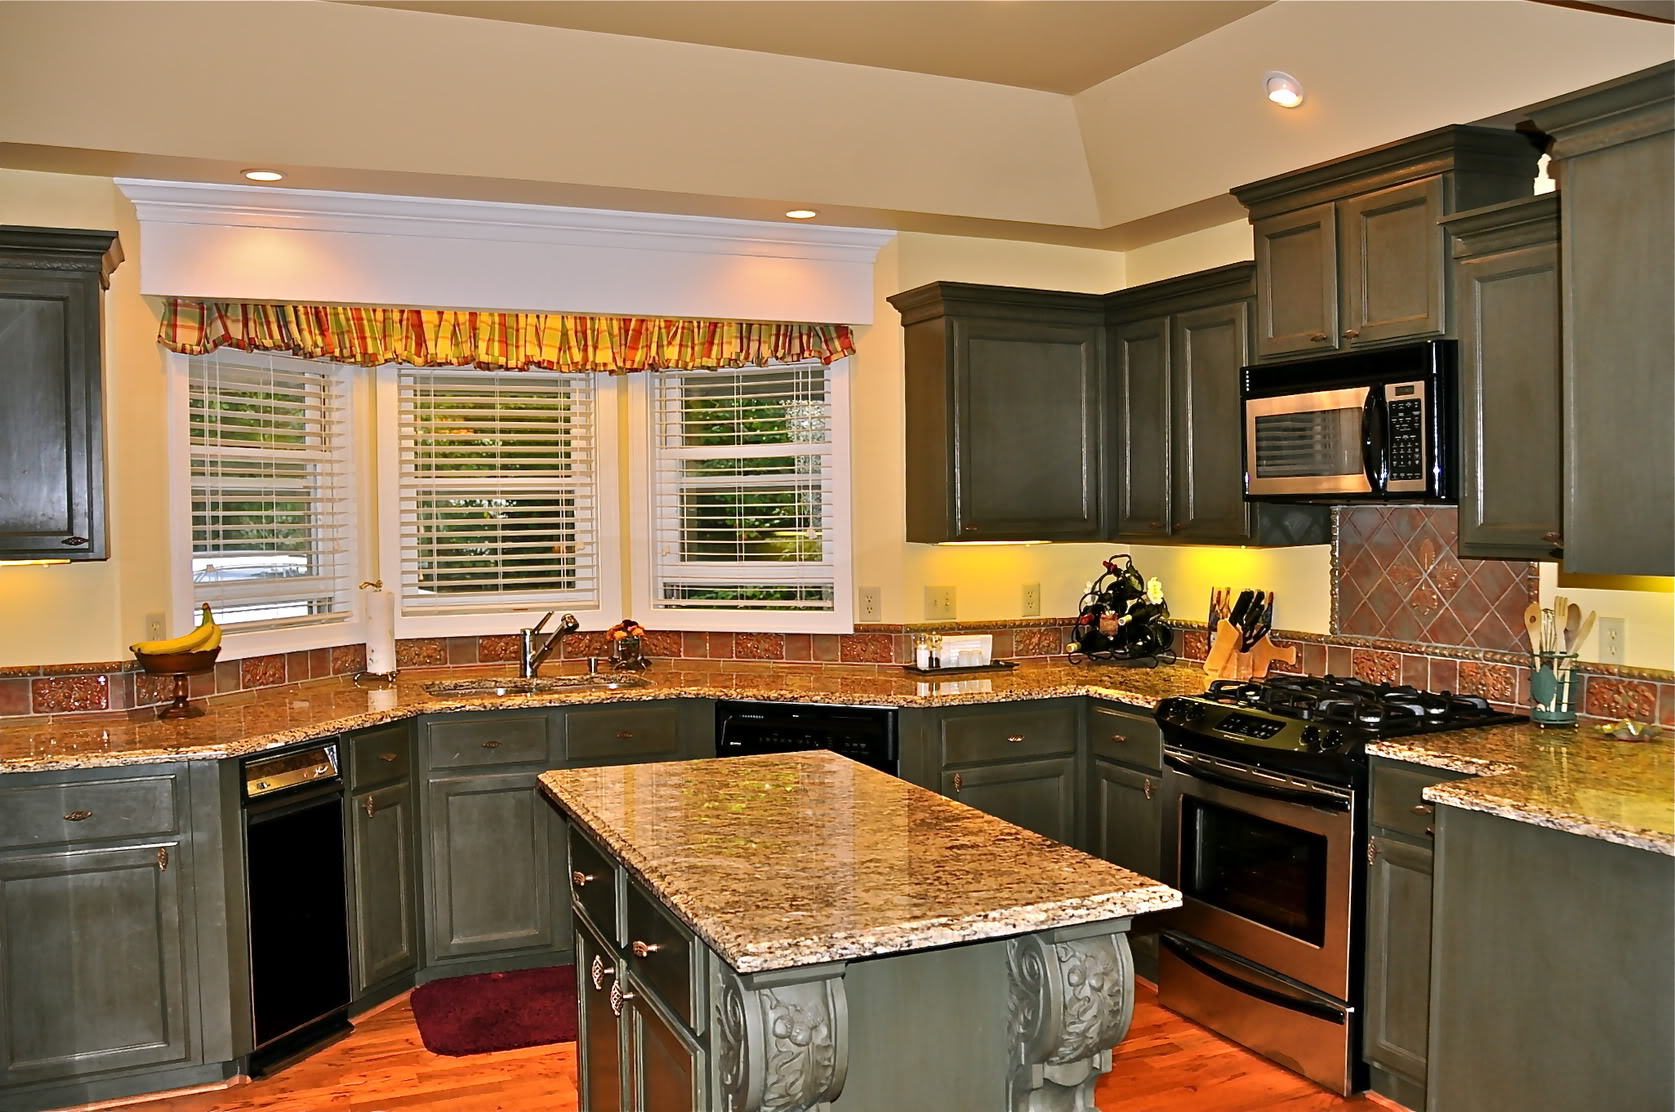 kitchen remodel will it be a dream or a nightmare diablo view trend remodeled kitchens 2013